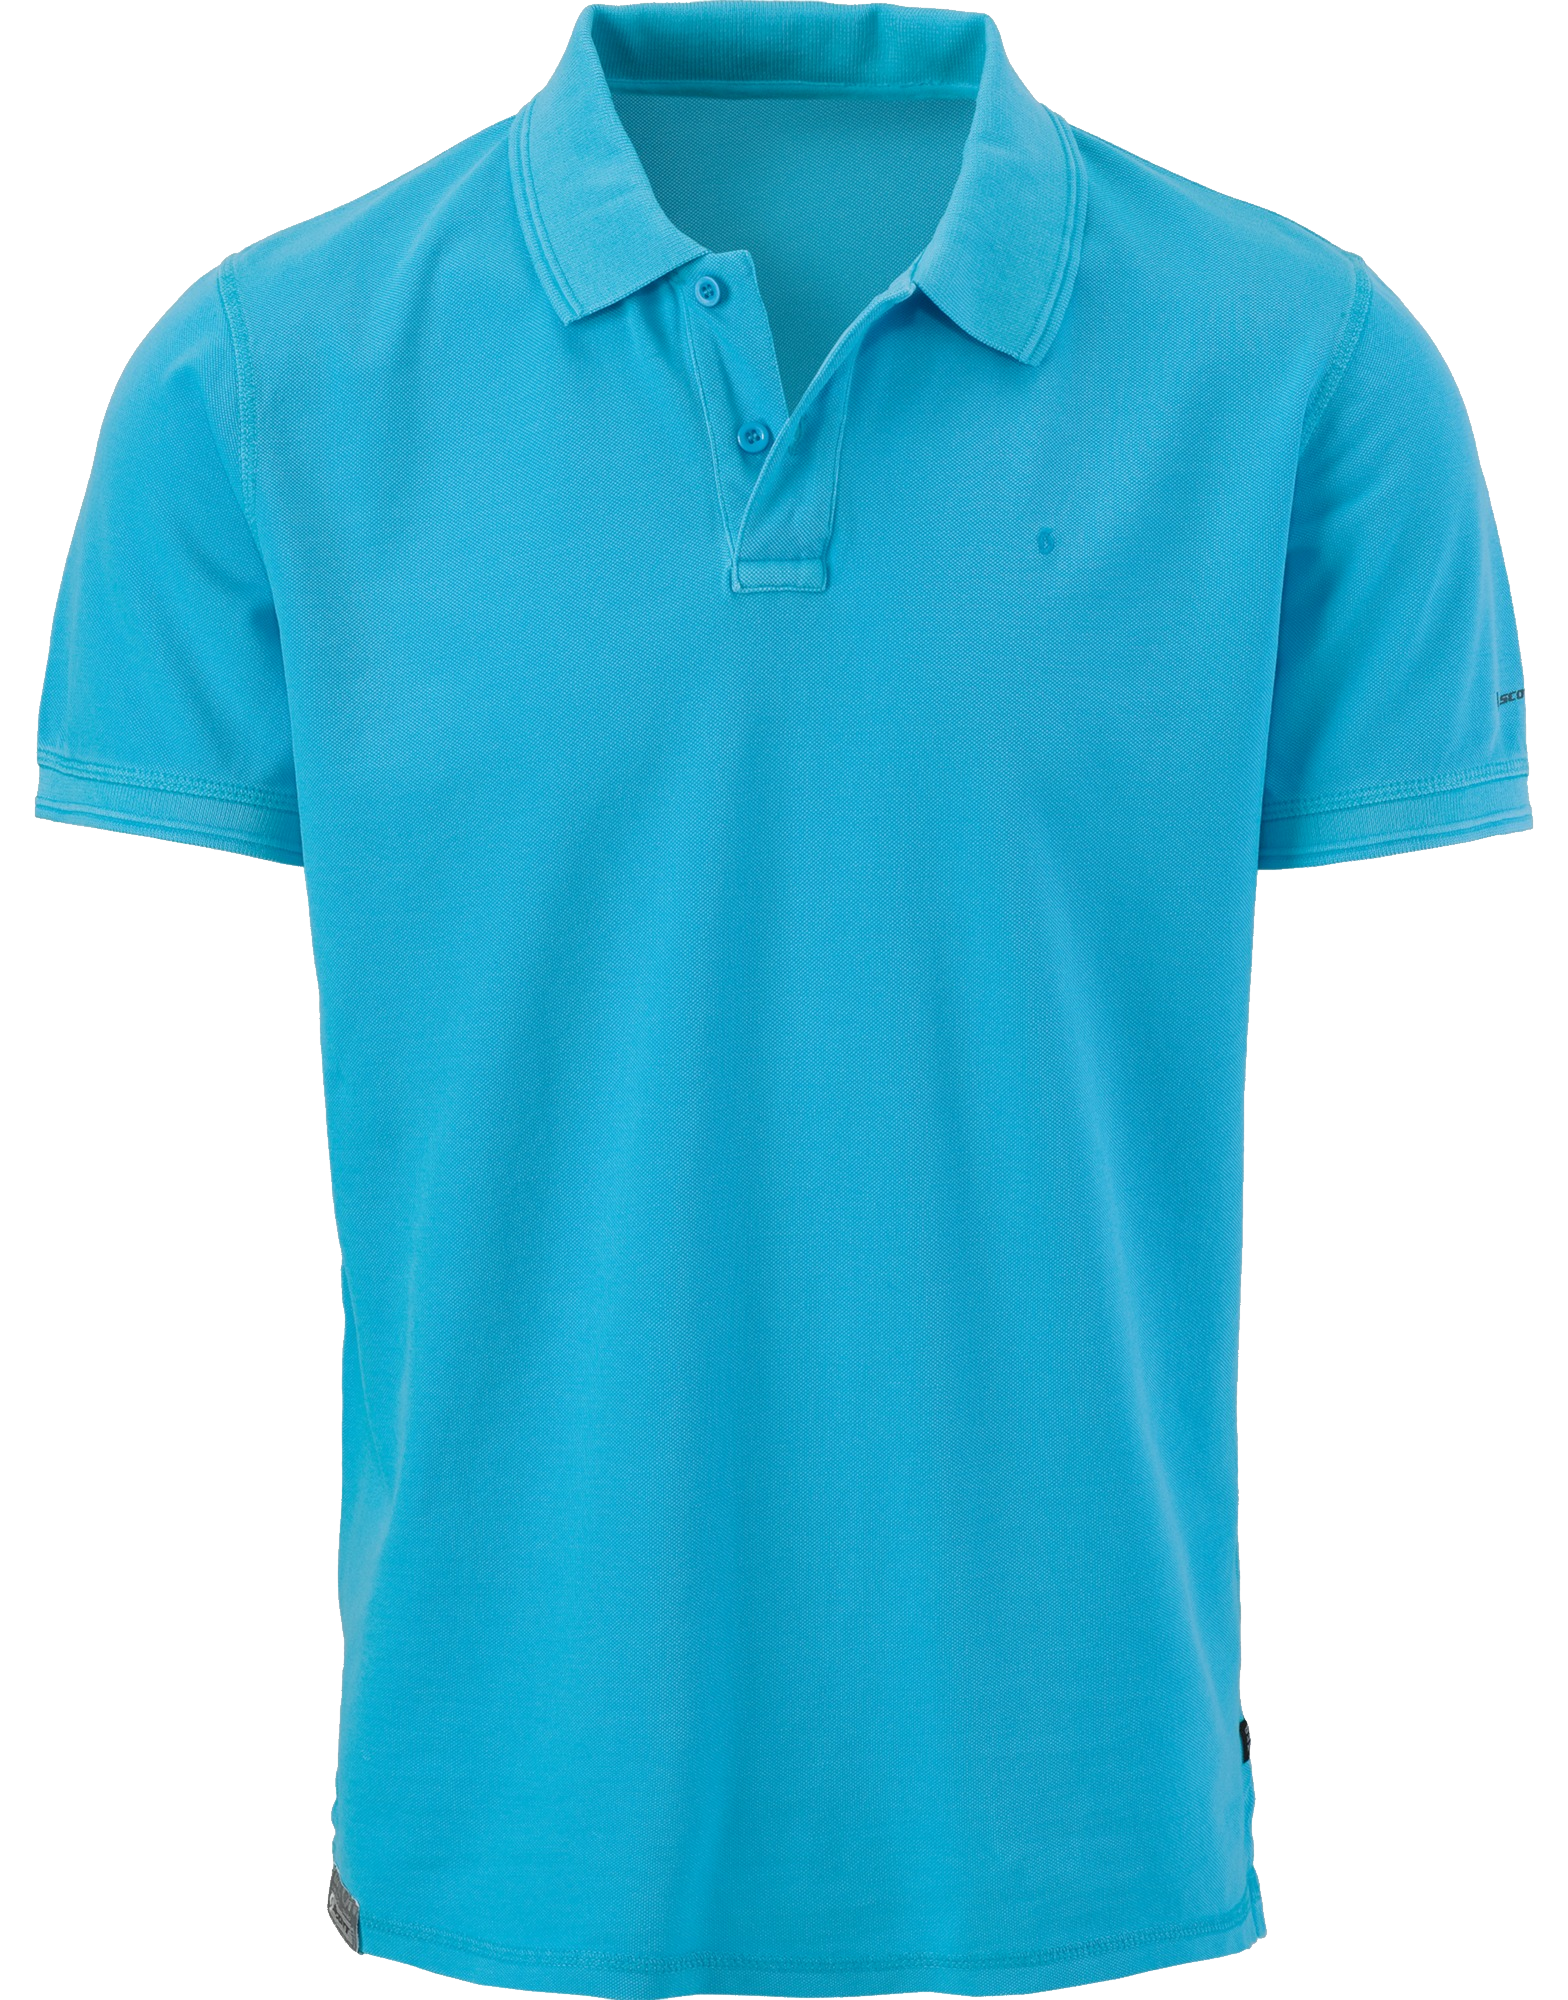 Blue Men\'s Polo Shirt PNG Image.